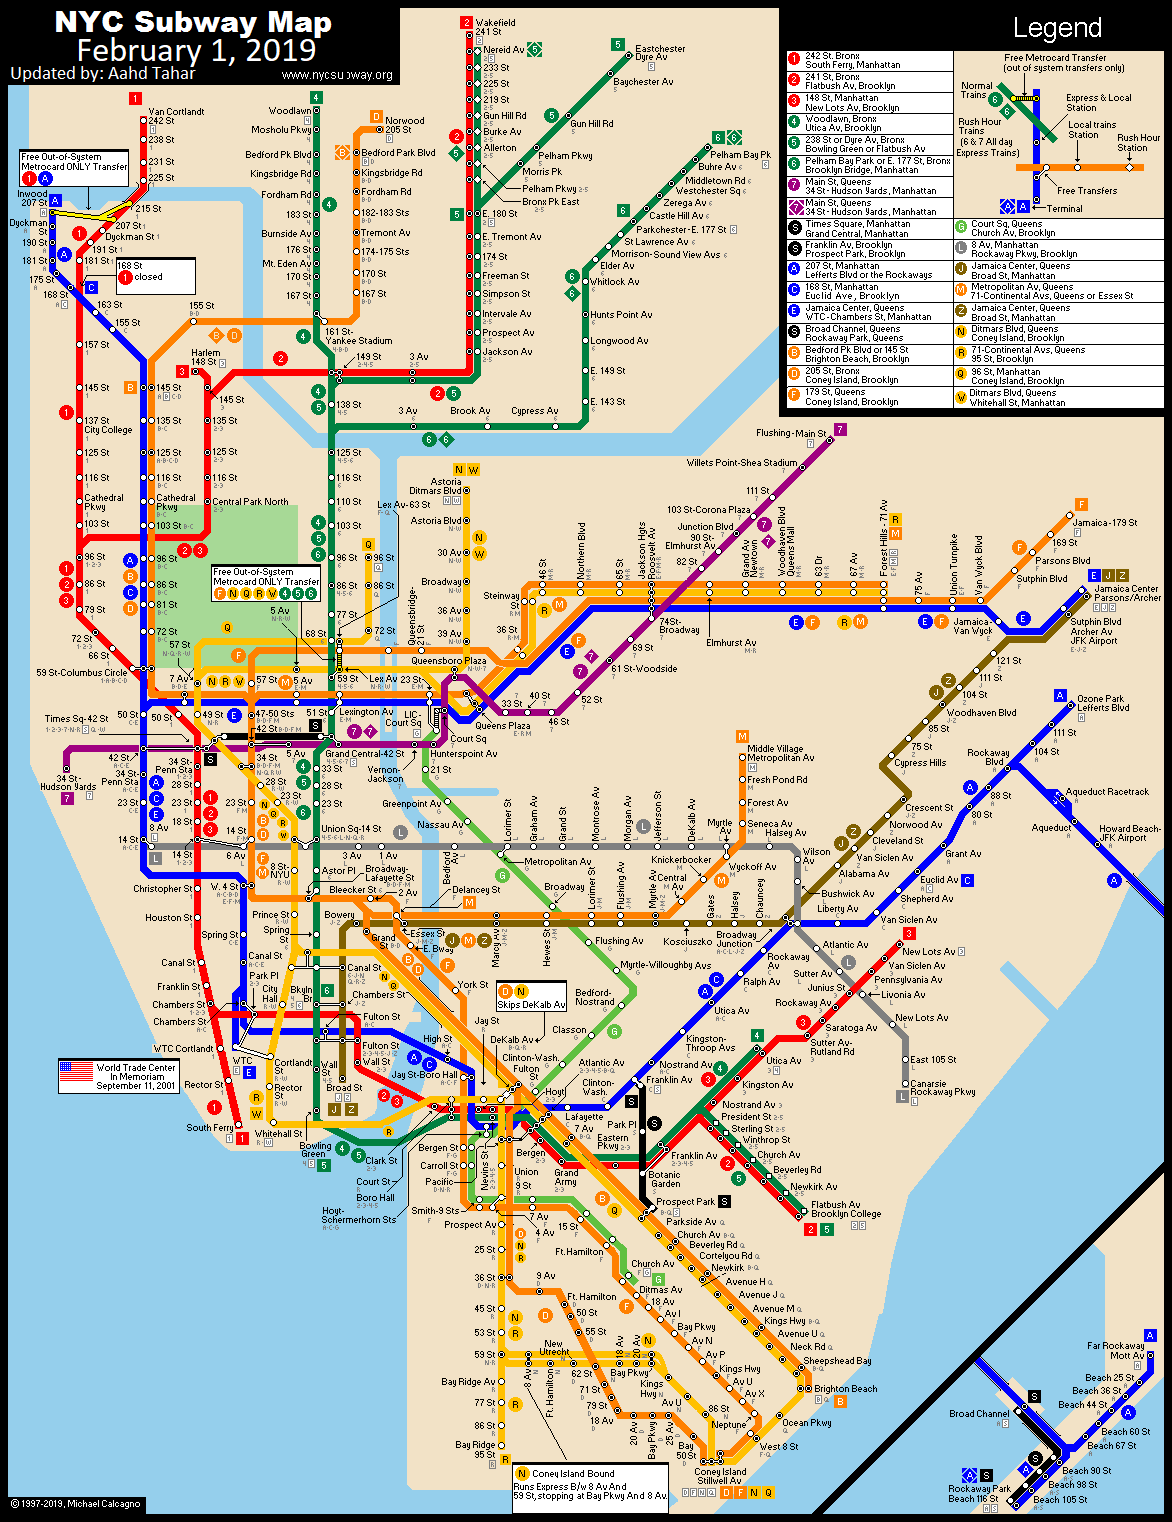 Nyc Subway Station Maps.Nycsubway Org New York City Subway Route Map By Michael Calcagno